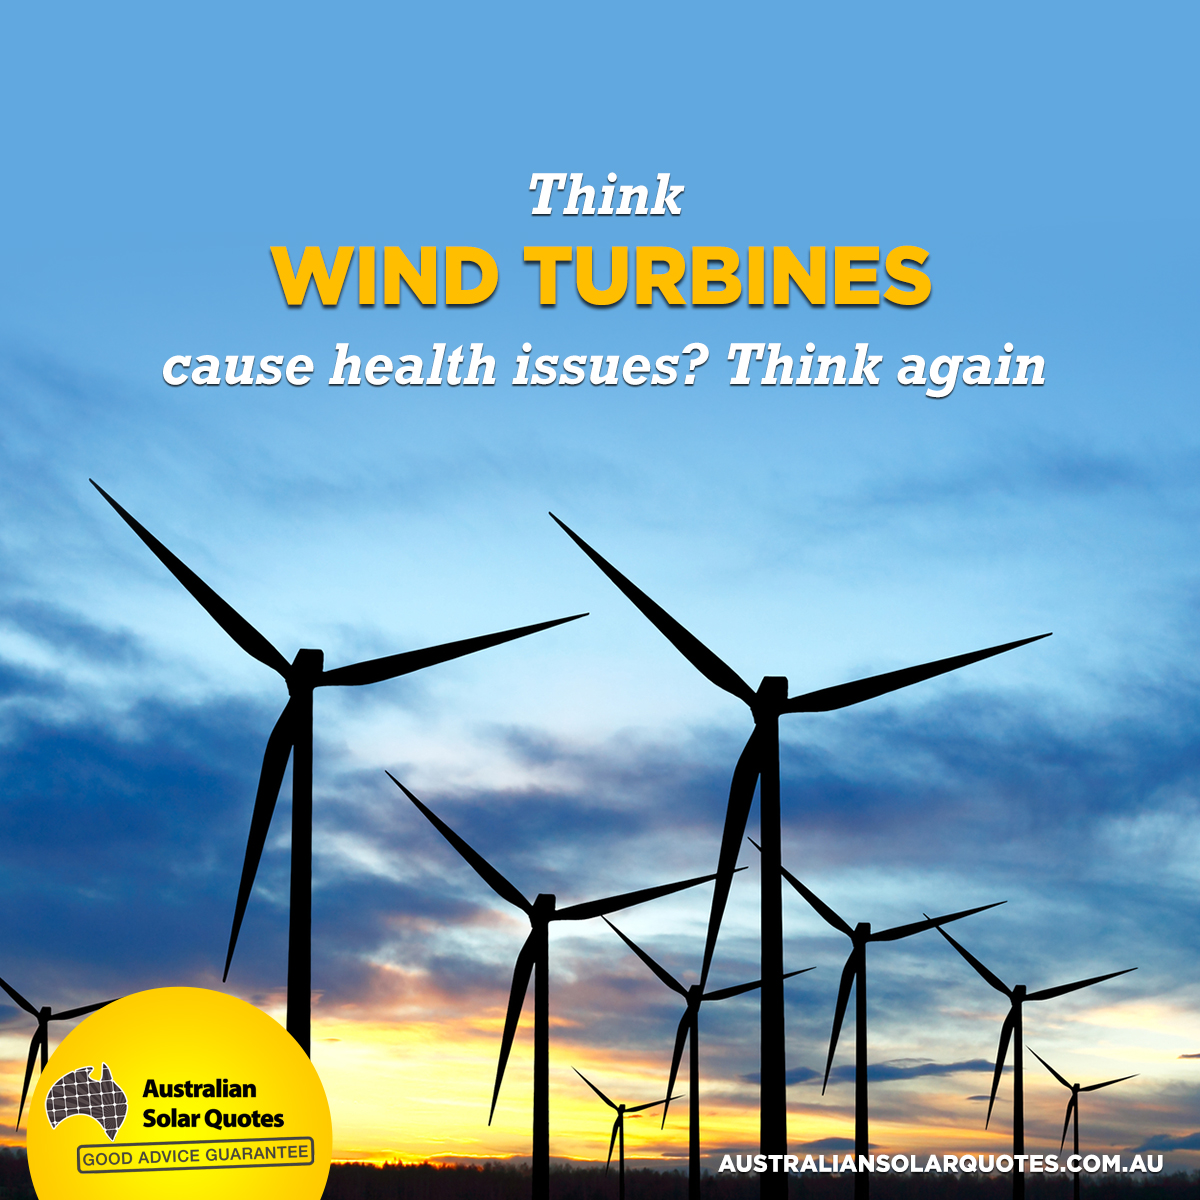 Think wind turbines cause health issues? Think again!